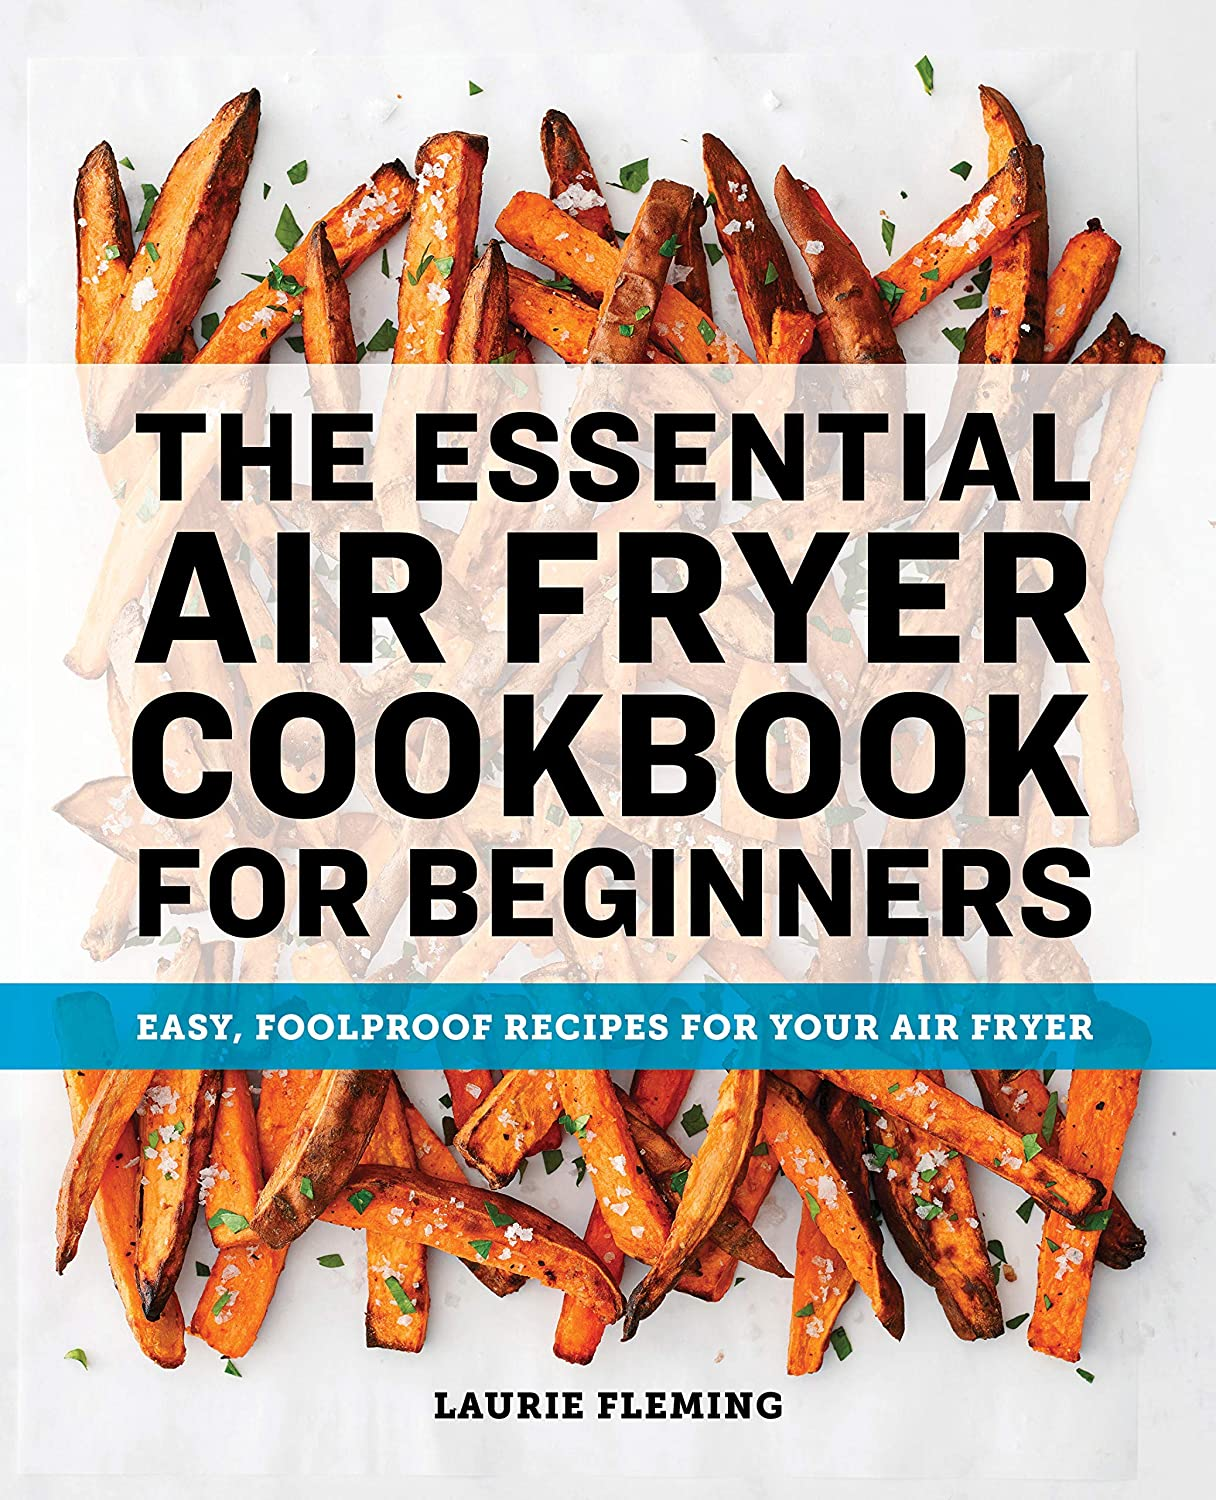 [Laurie Fleming ]-[The Essential Air Fryer Cookbook for Beginners]-[Paperback]